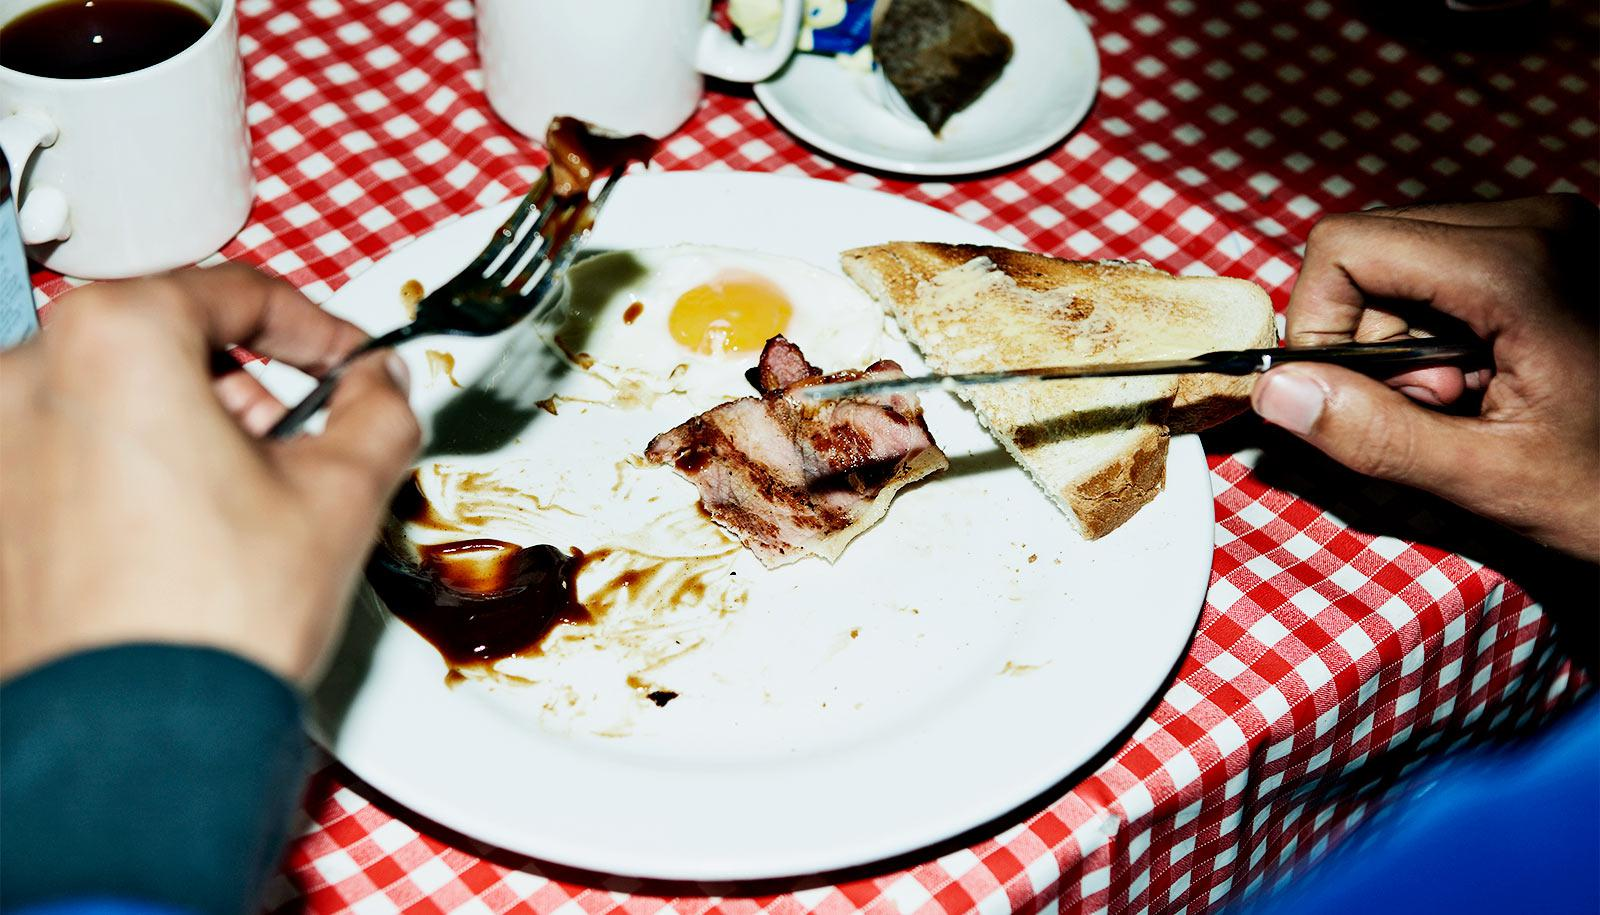 A man eats a plate of breakfast food that includes bacon, toast, and an egg. The plate is sitting on a red and white checkerboard table cloth while the man holds utensils in each hand